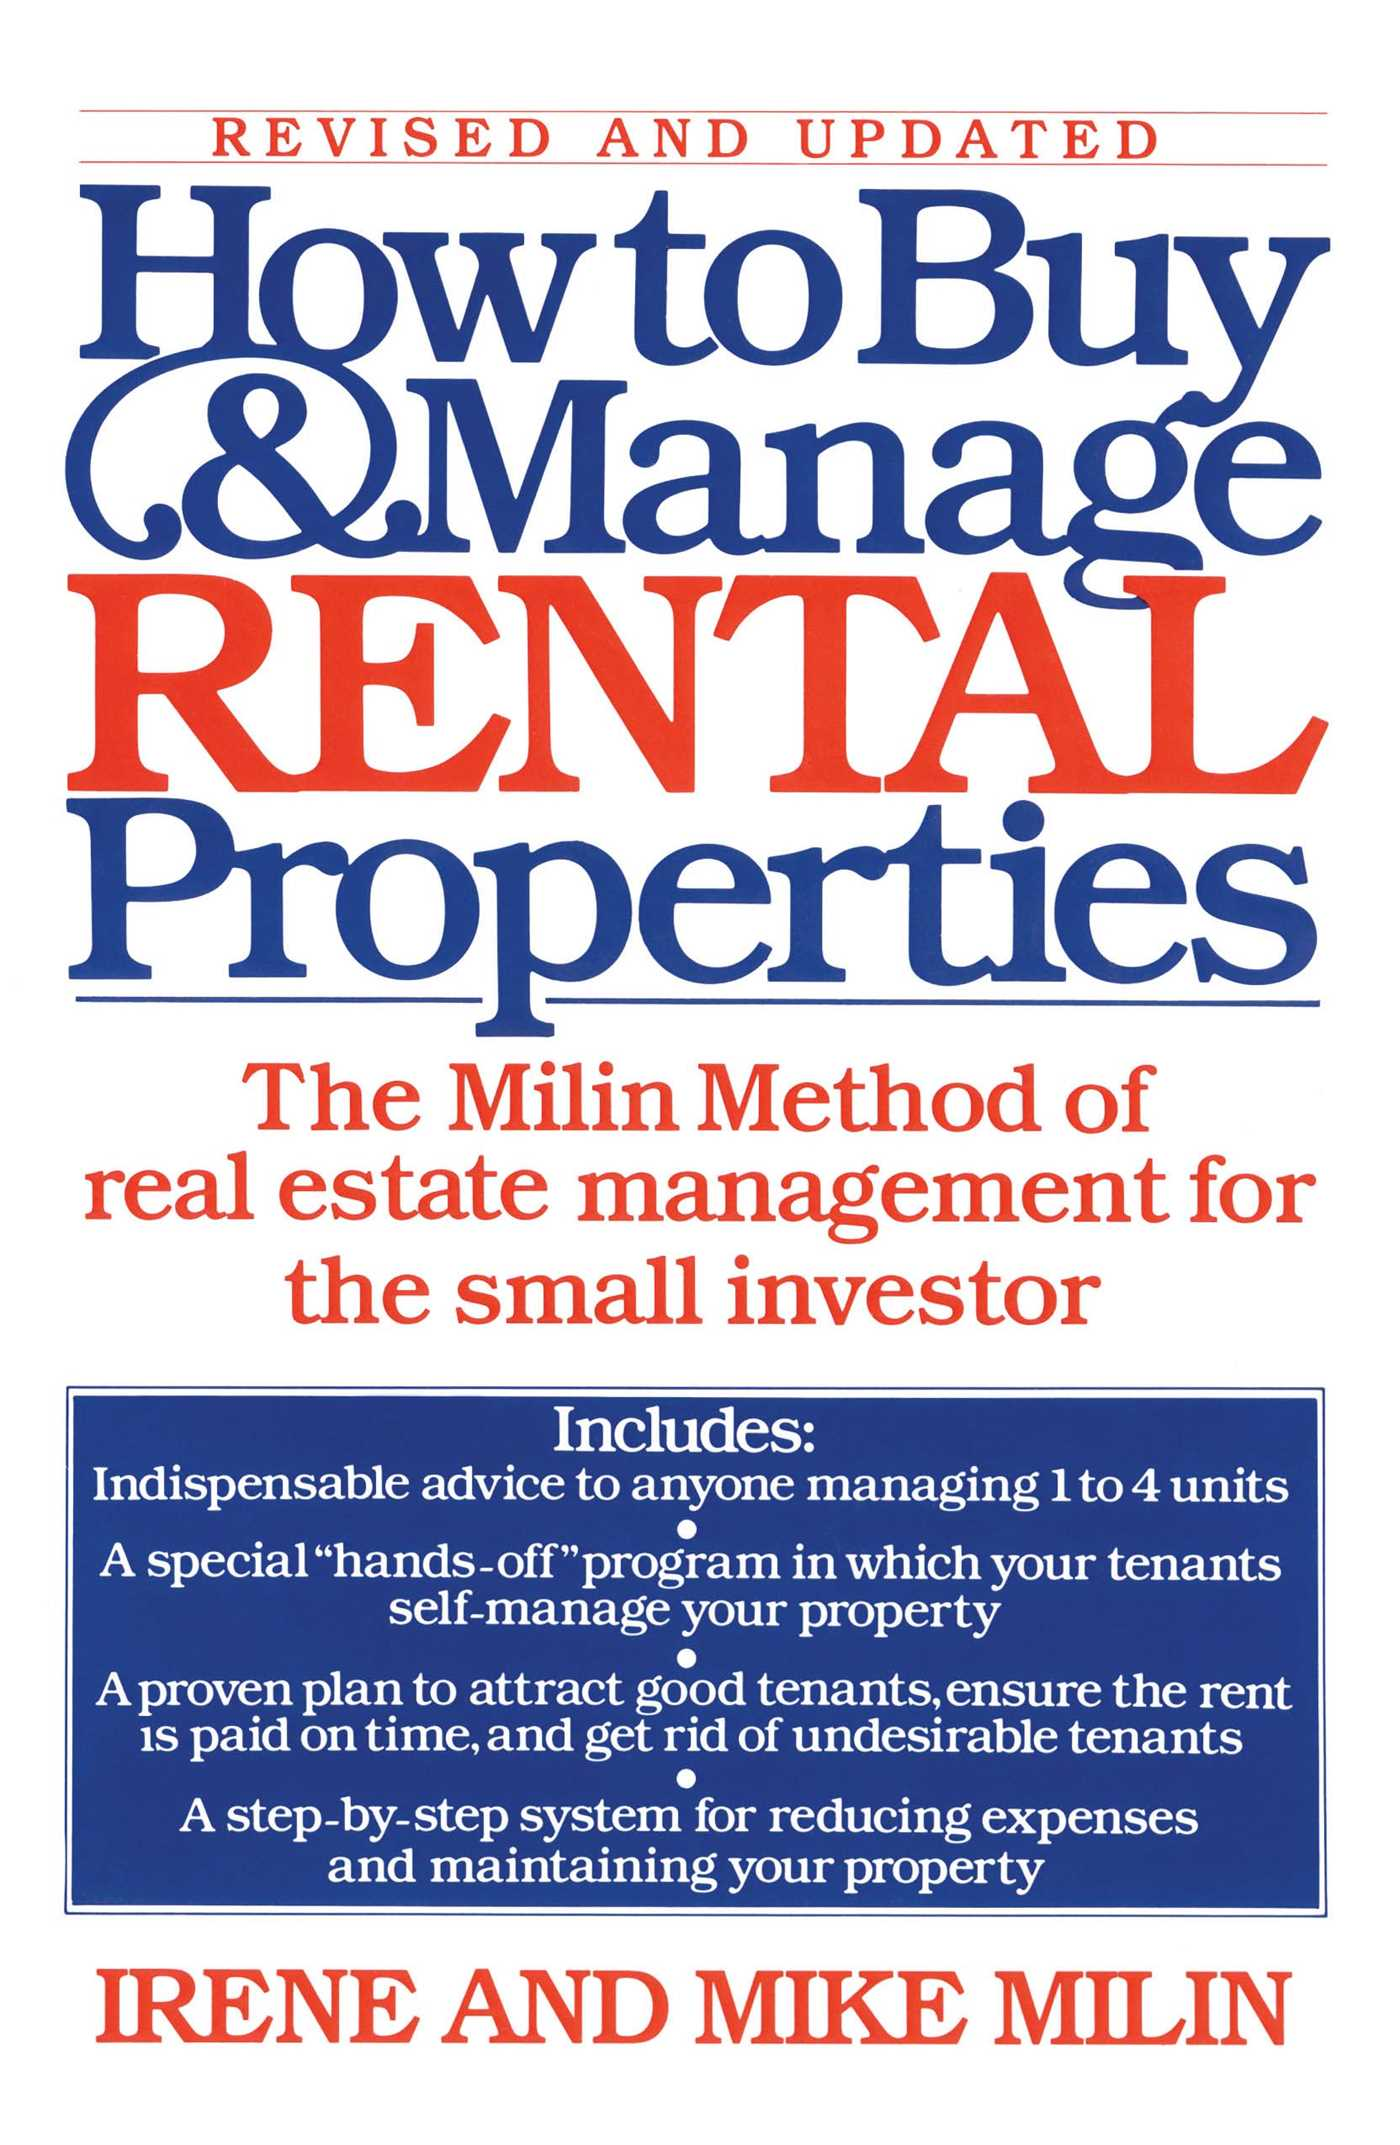 How-to-buy-and-manage-rental-properties-9780671644239_hr